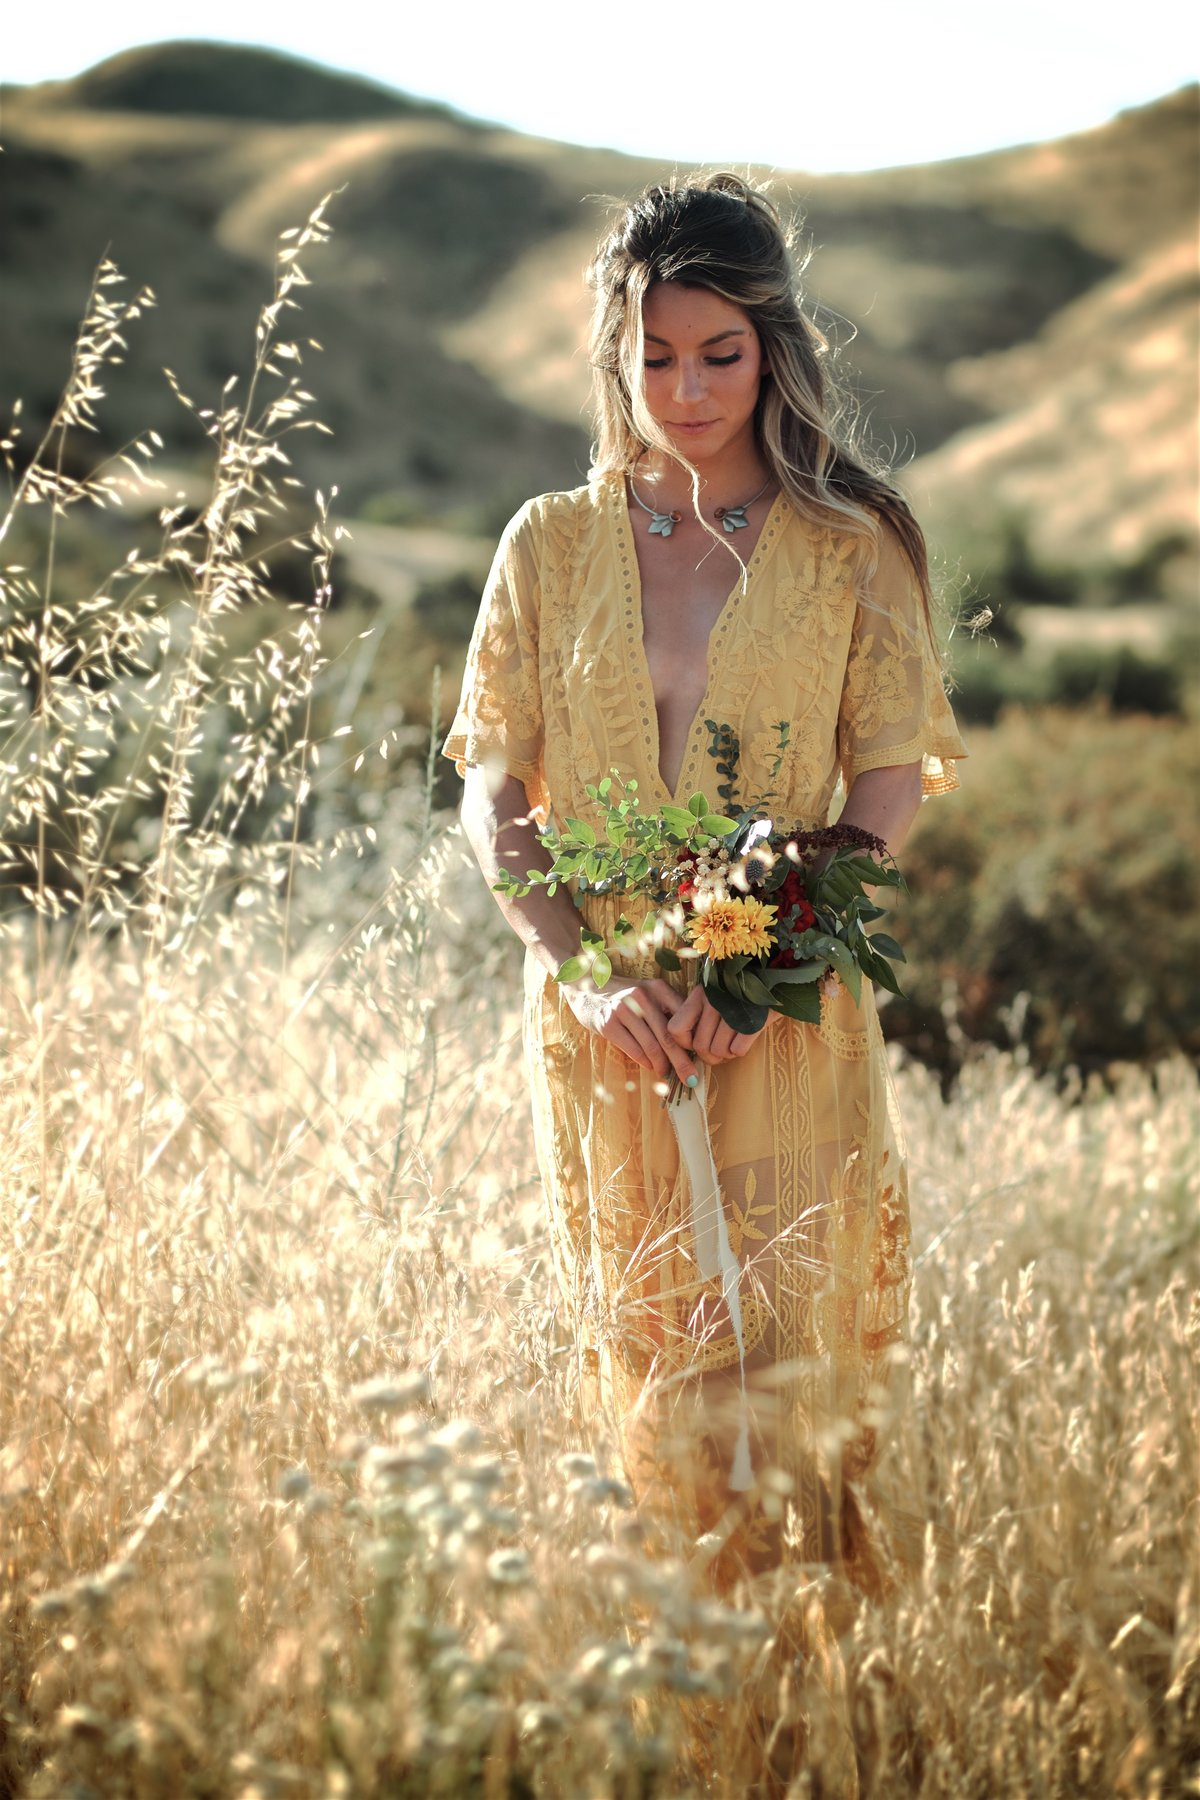 Boho Vintage Girl in Mustard Yellow Dress in Field of Flowers Free-Spirited Bridesmaid Ideas